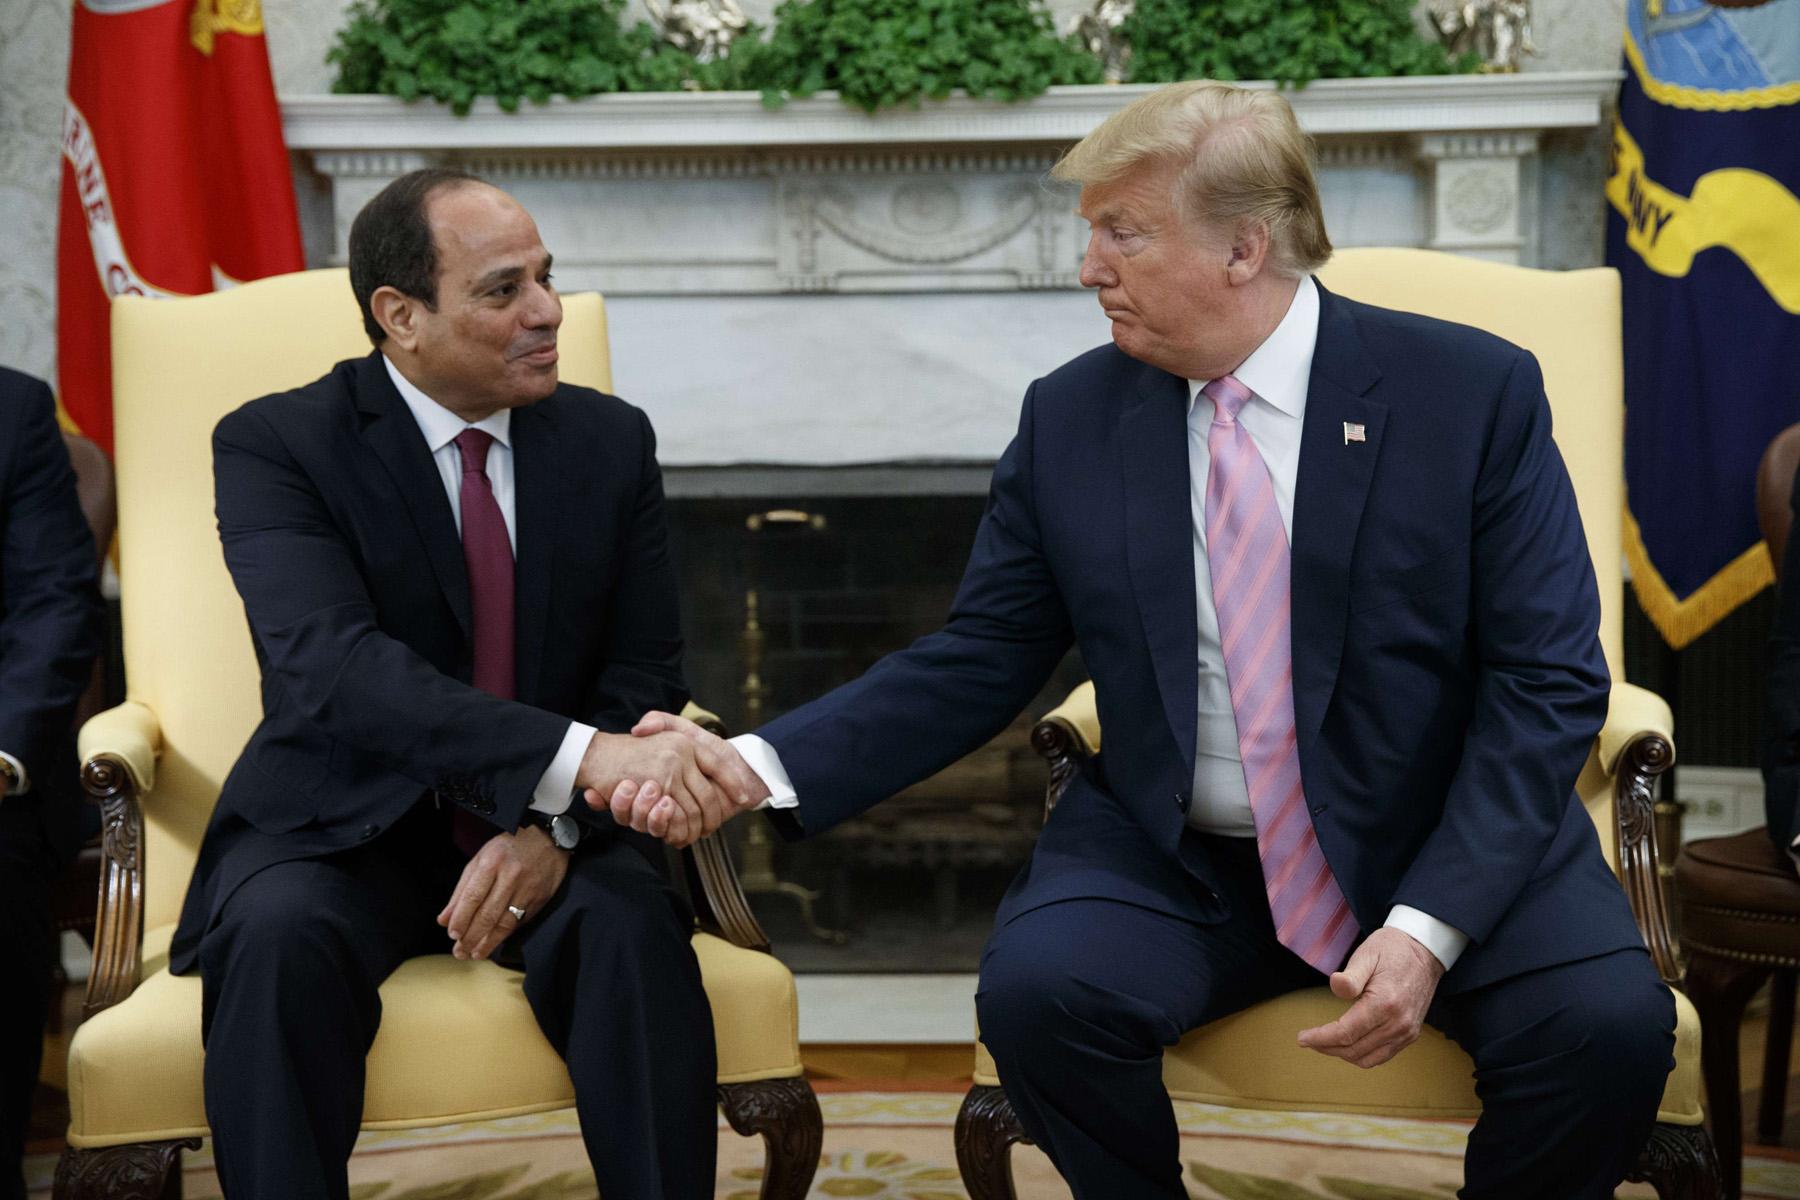 President Donald Trump meets with Egyptian President Abdel Fattah el-Sisi in the Oval Office of the White House, Tuesday, April 9, 2019, in Washington. (AP)